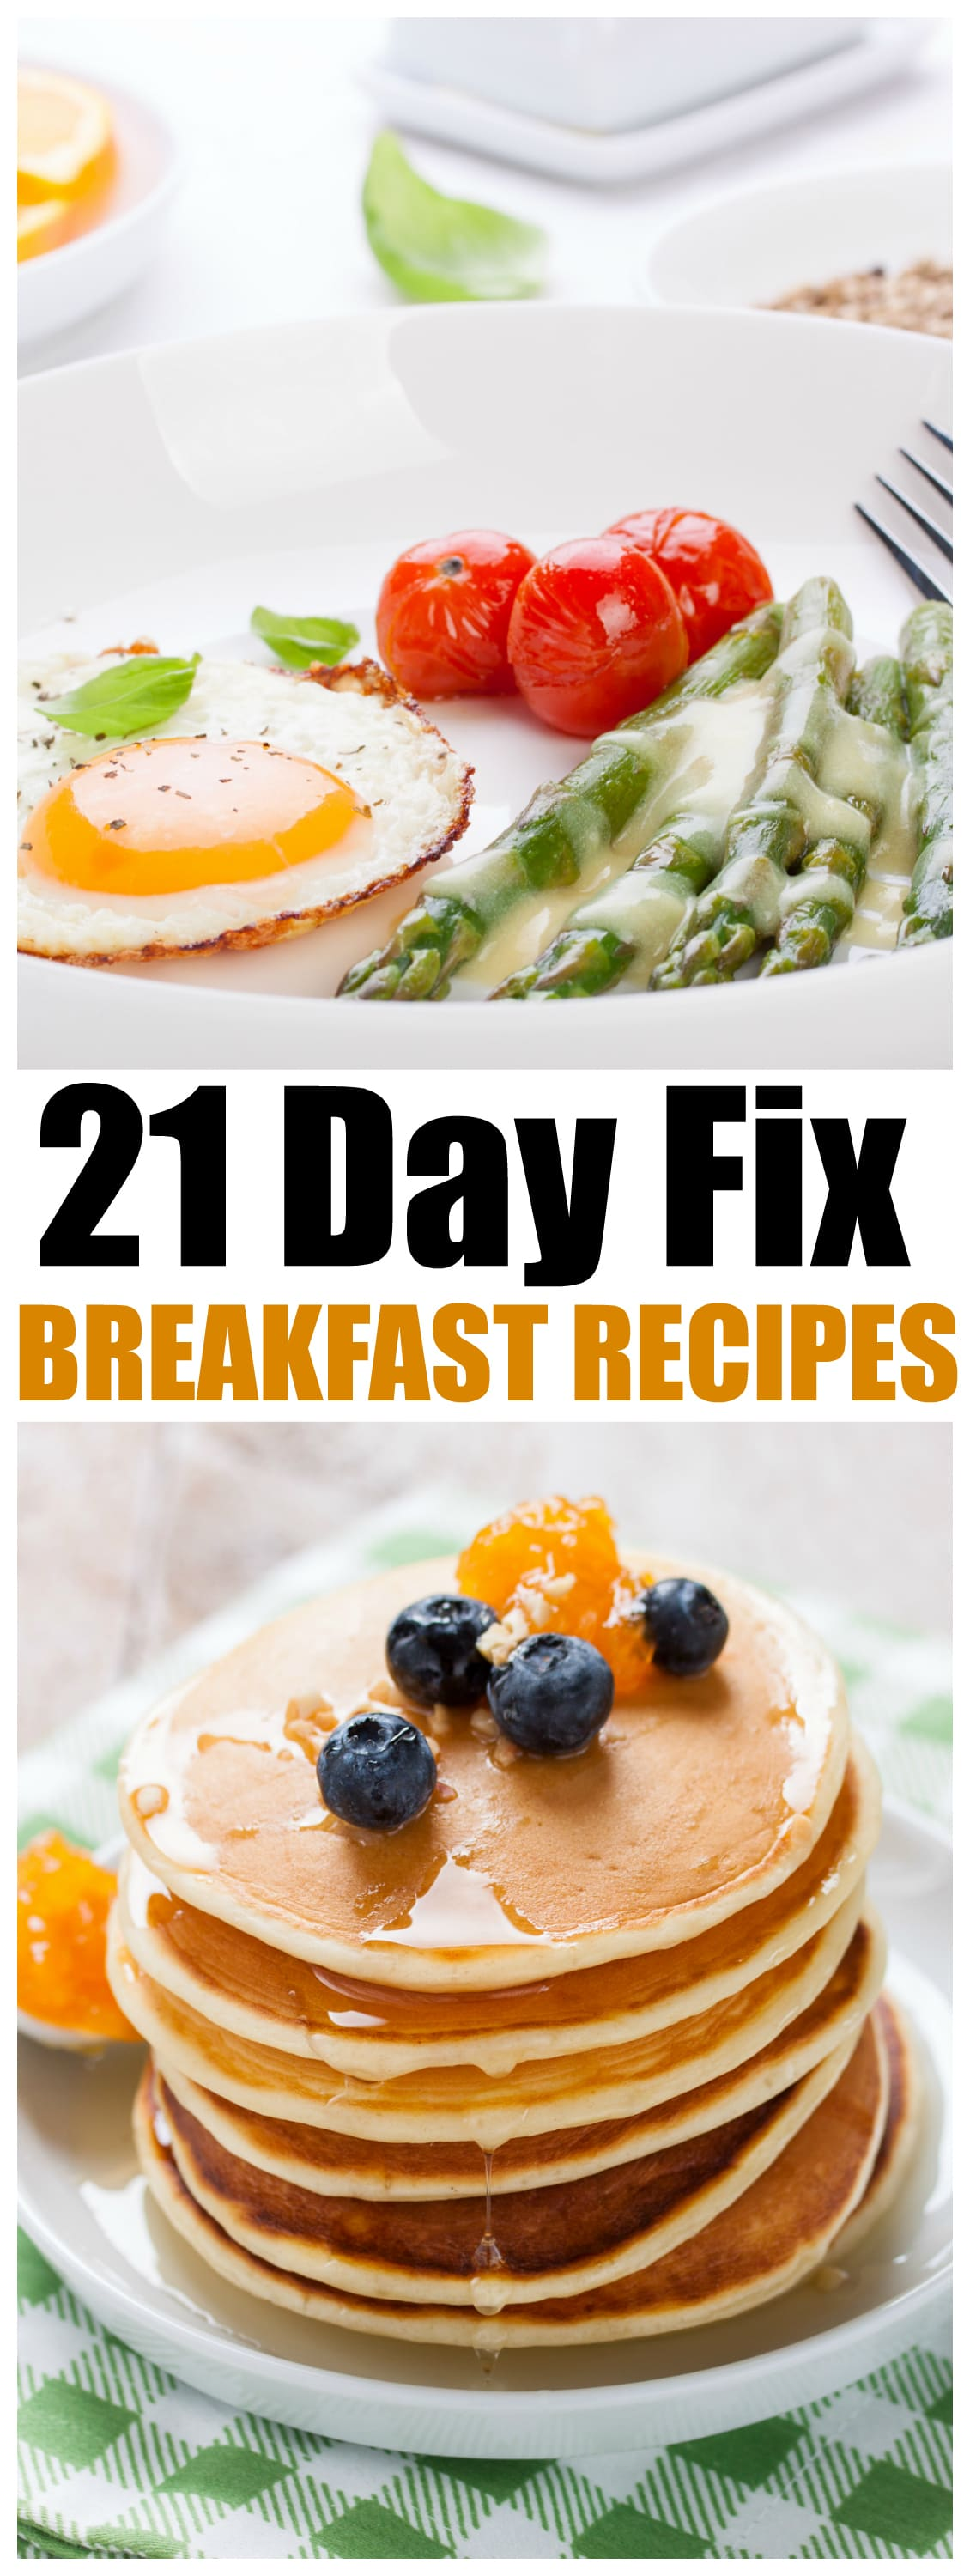 21-Day Fix Breakfast Recipes, Get a breakfast for Every work day of the month with these 20 21-day fix recipes